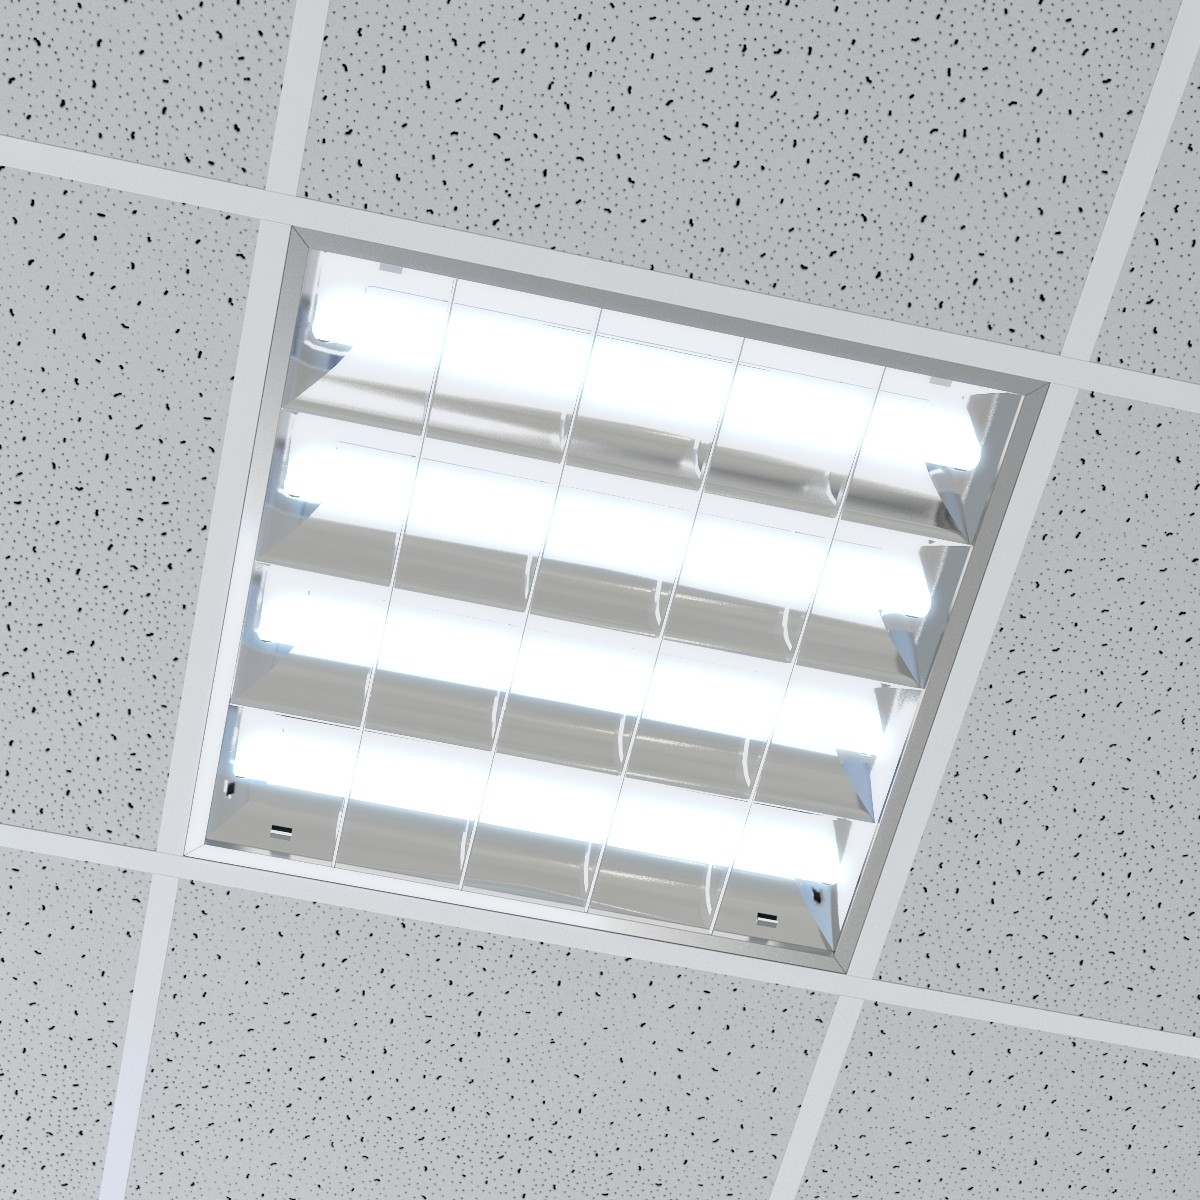 Exceptional Where Are You Supposed To Put Your Ceiling Office Lights?